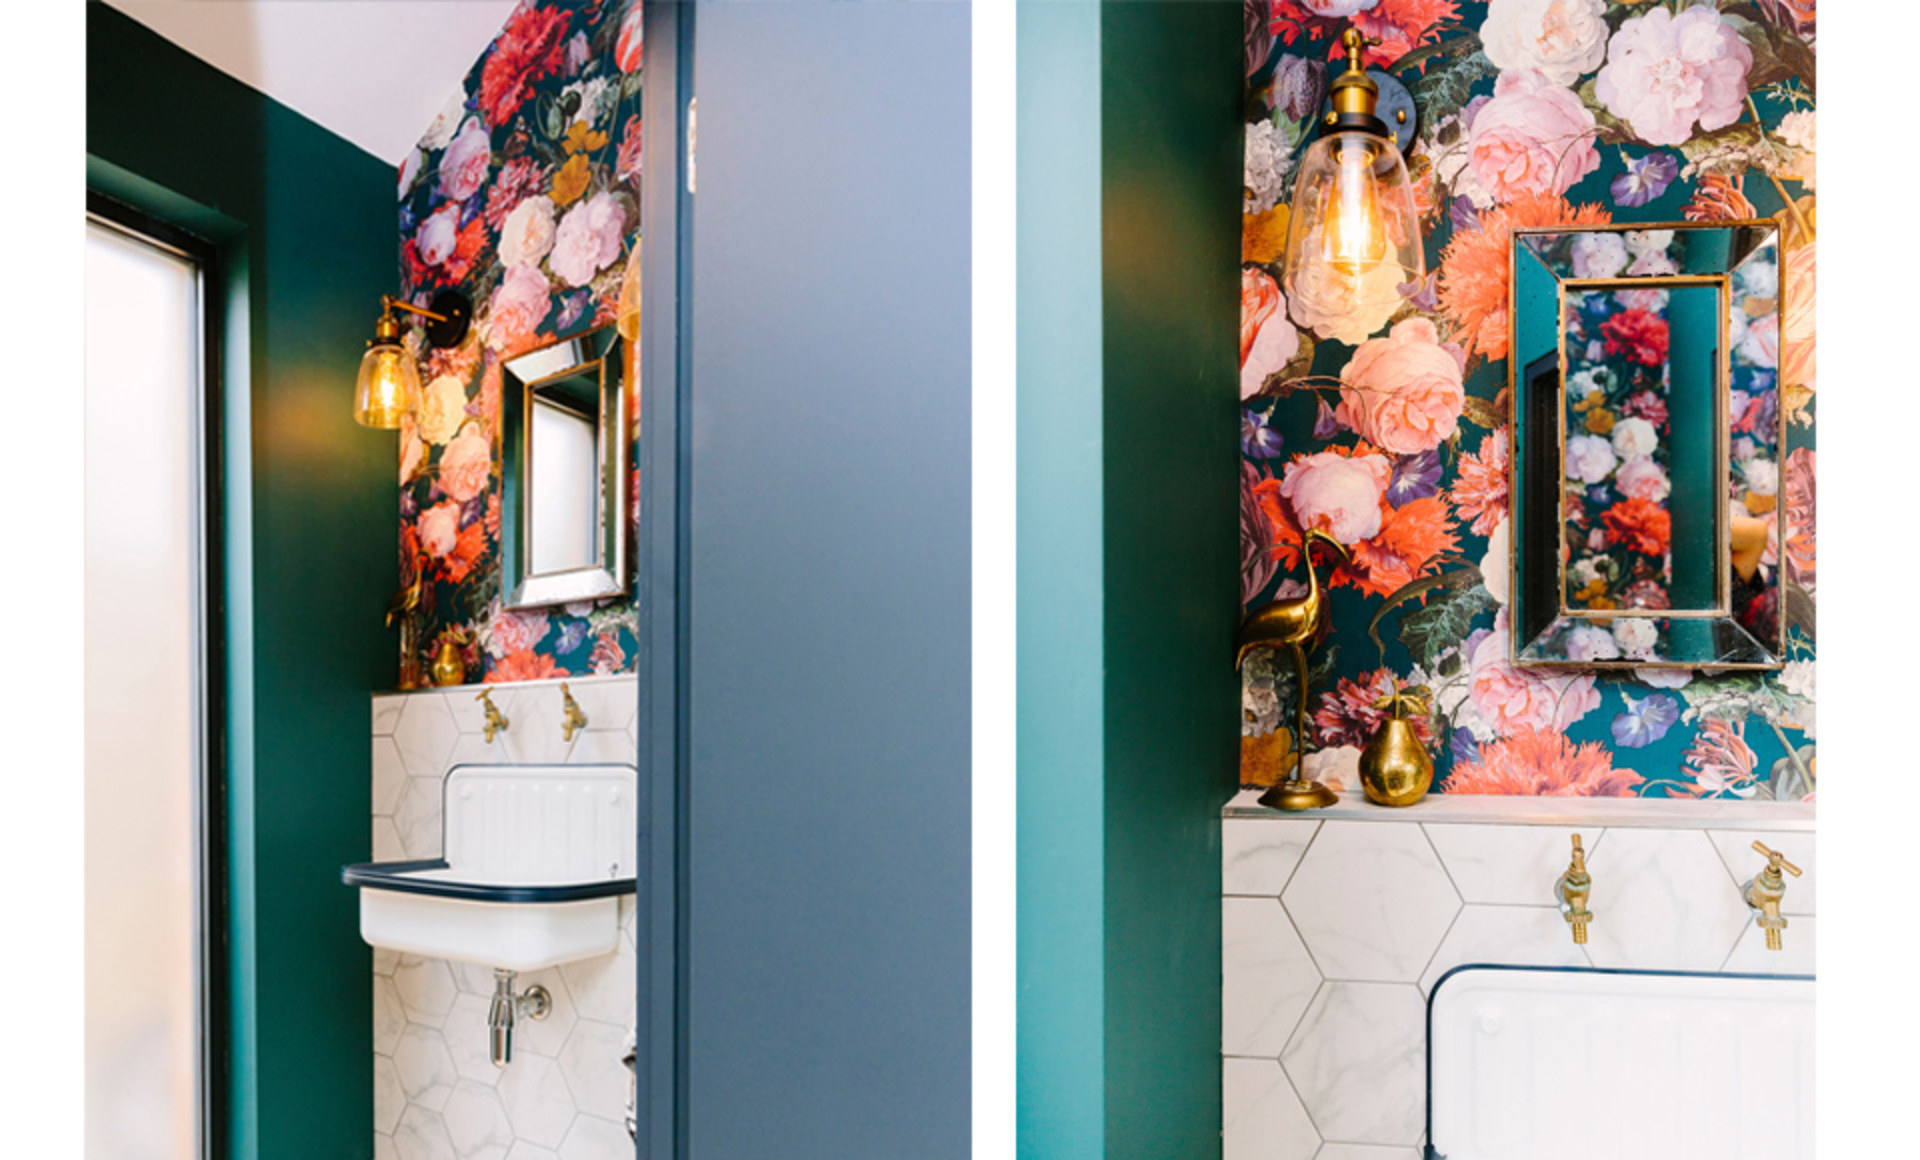 Floral wallpaper marble tiles brass fittings and wall lights create a statement in a small bathroom cloakroom